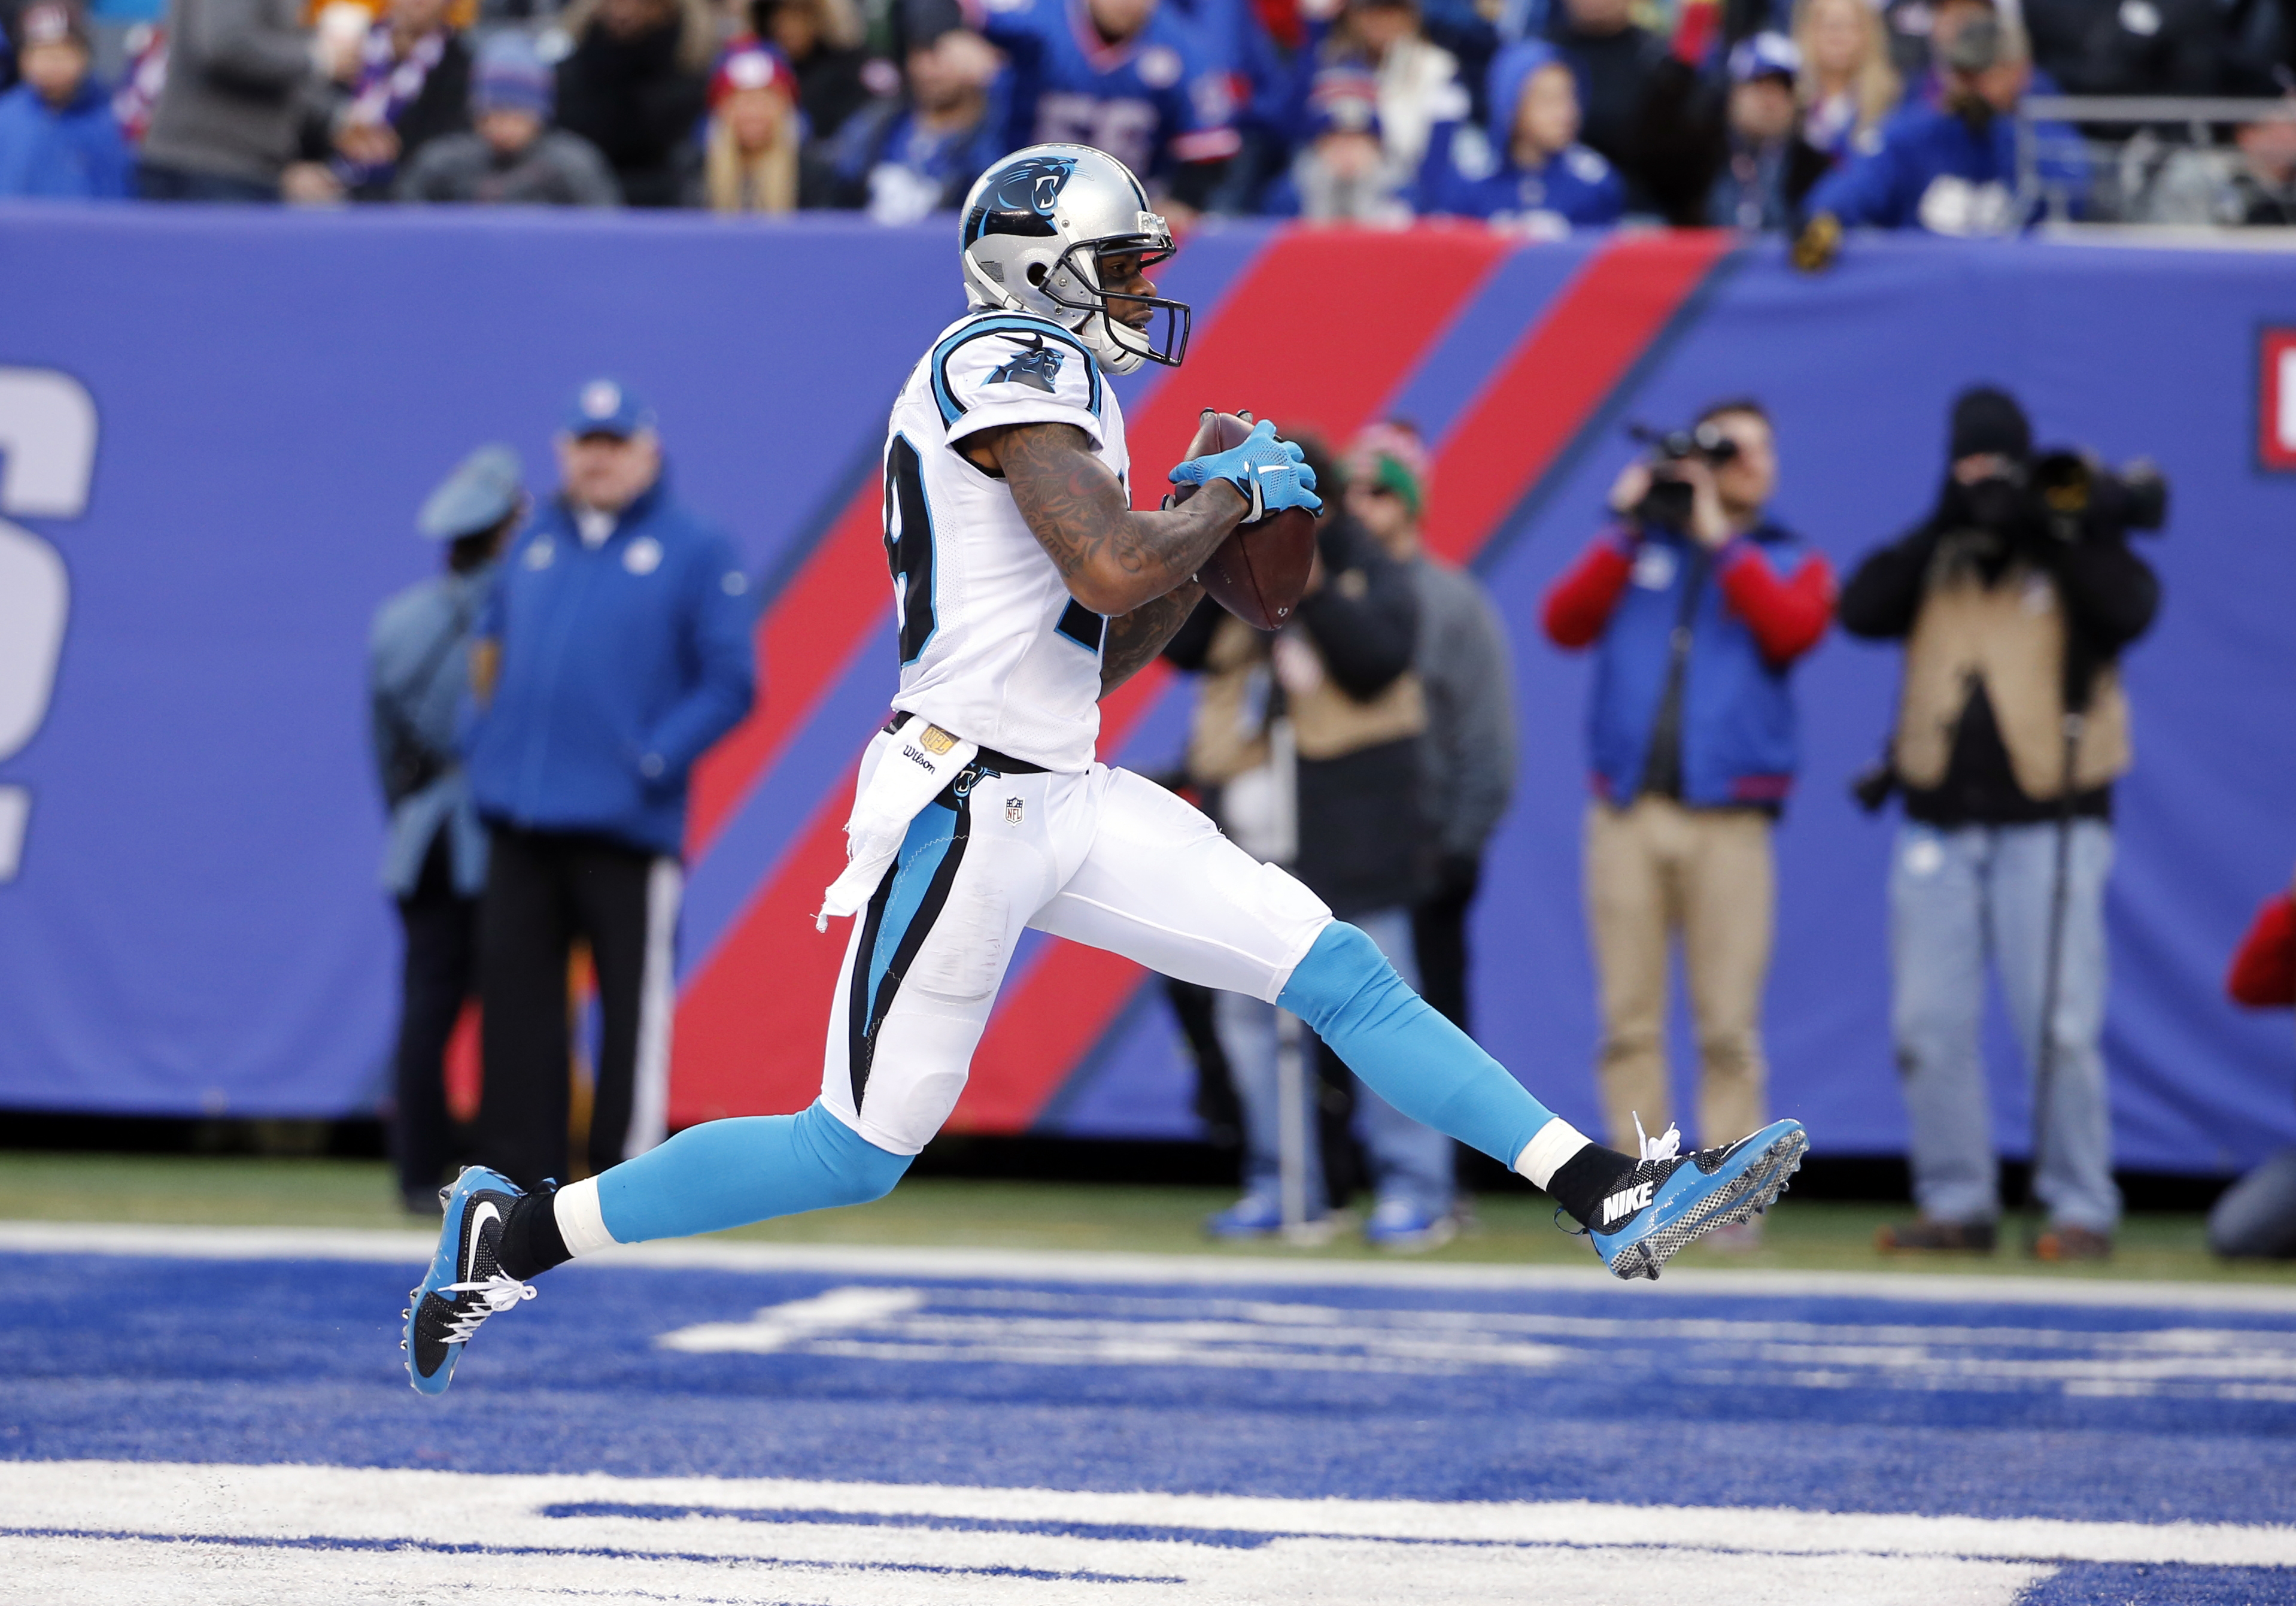 FILE - In this Sunday, Dec. 20, 2015, file photo, Carolina Panthers' Ted Ginn Jr. steps across the endzone after scoring a touchdown during the second half of an NFL football game against the New York Giants in East Rutherford, N.J. Ginn Jr. is making pla